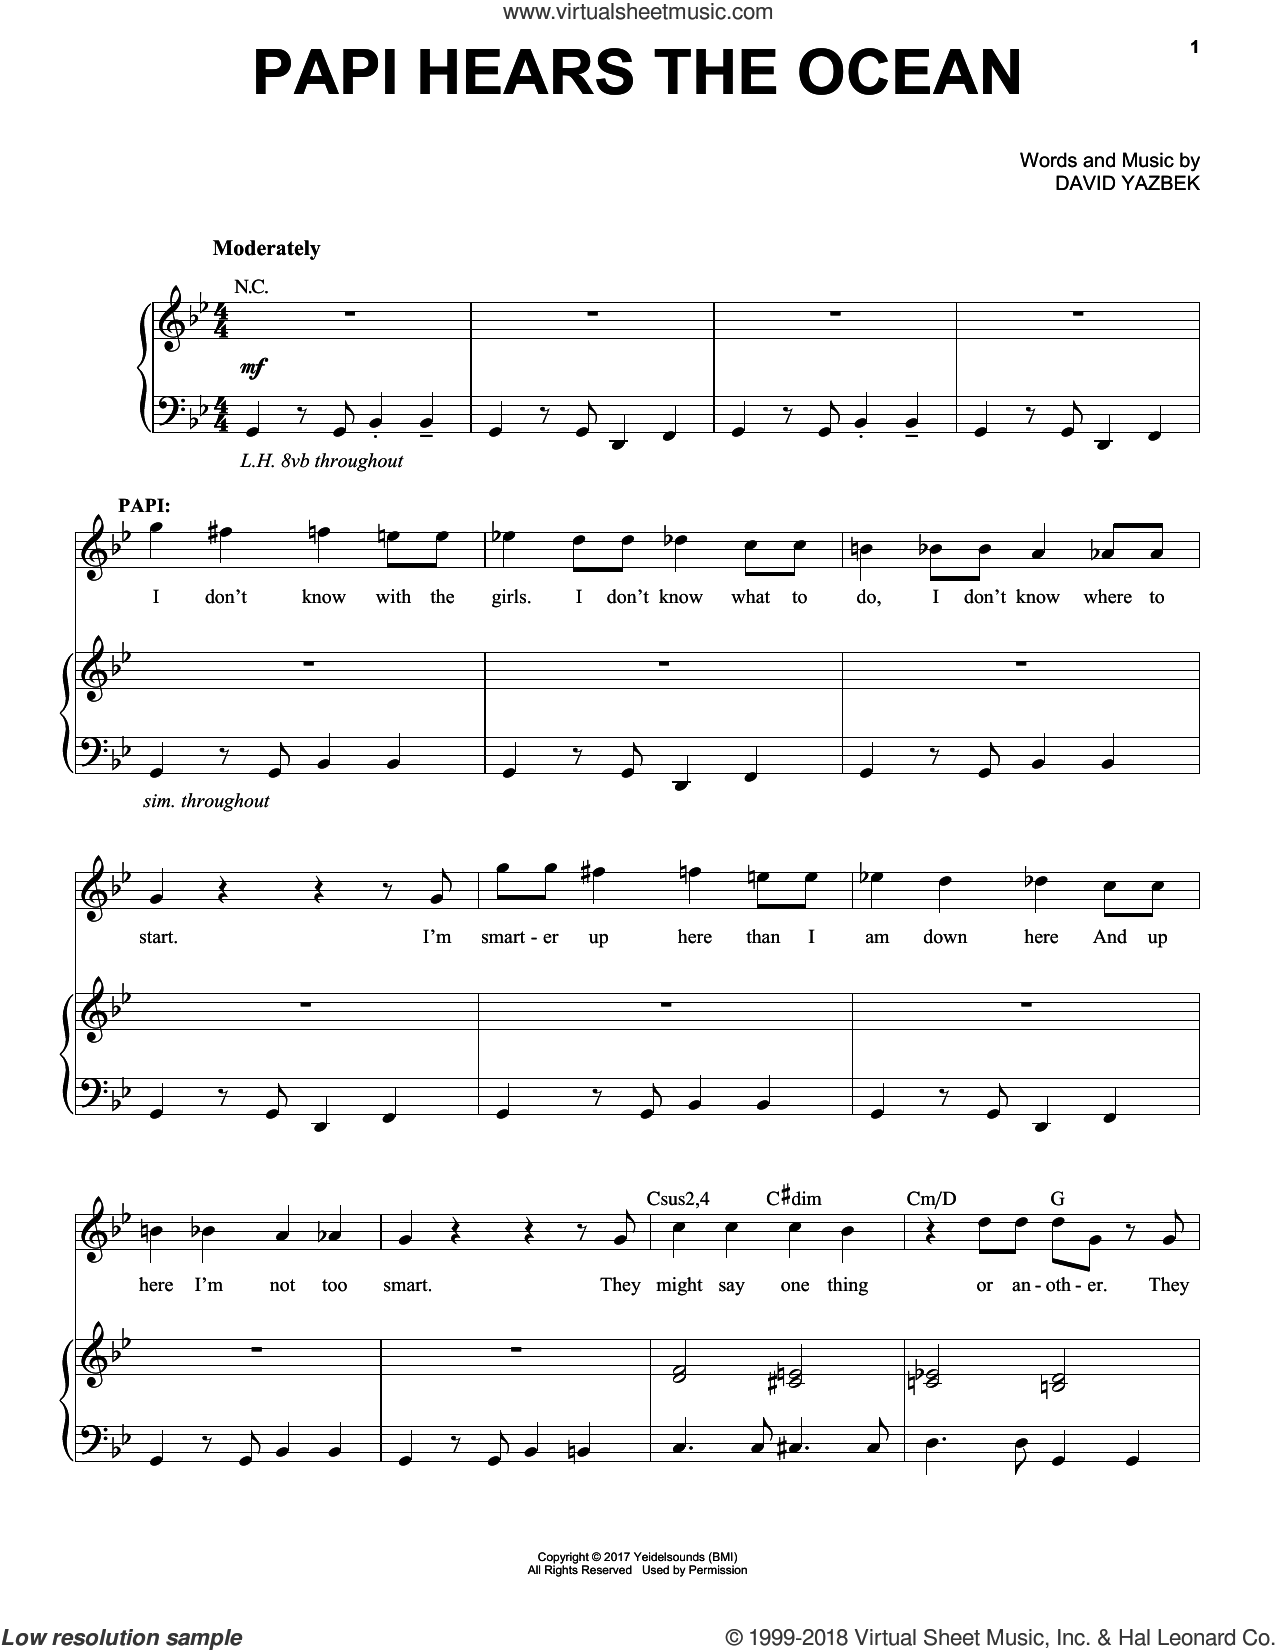 Papi Hears The Ocean sheet music for voice and piano by David Yazbek, intermediate skill level